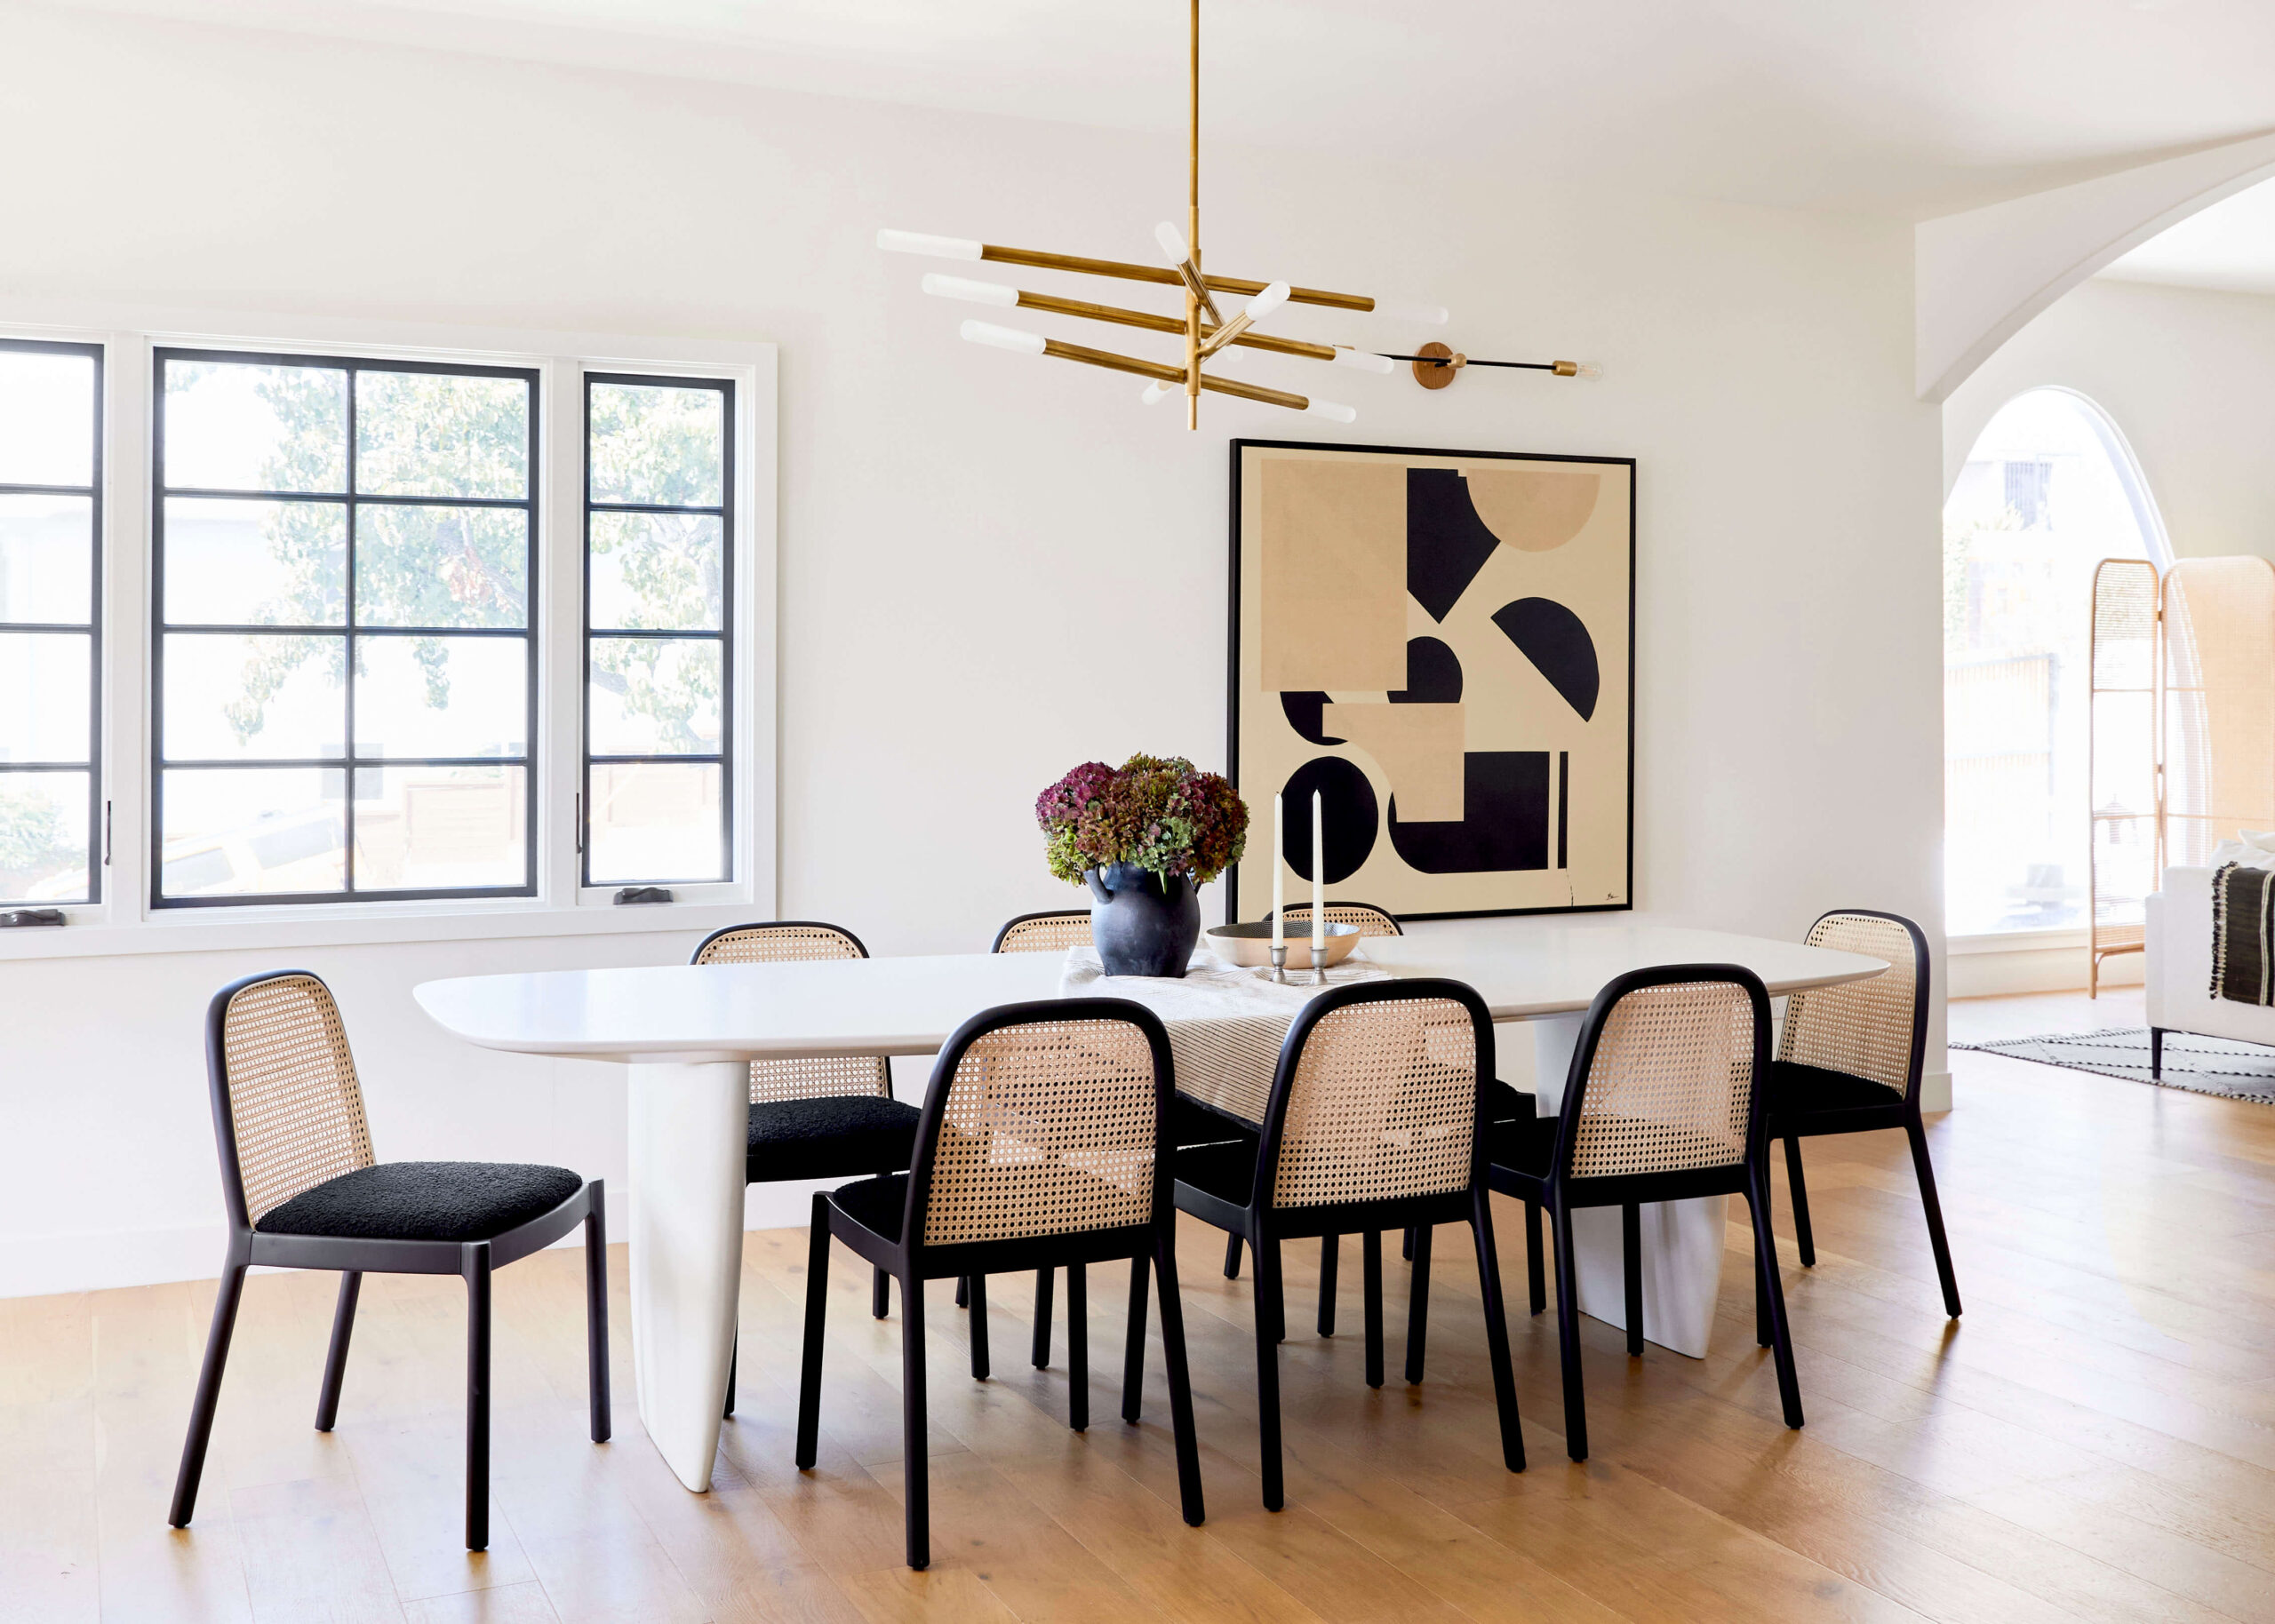 GINNY_MACDONALD_JACLYN_JOHNSON_DINING_ROOM_OVAL_DINING_TABLE